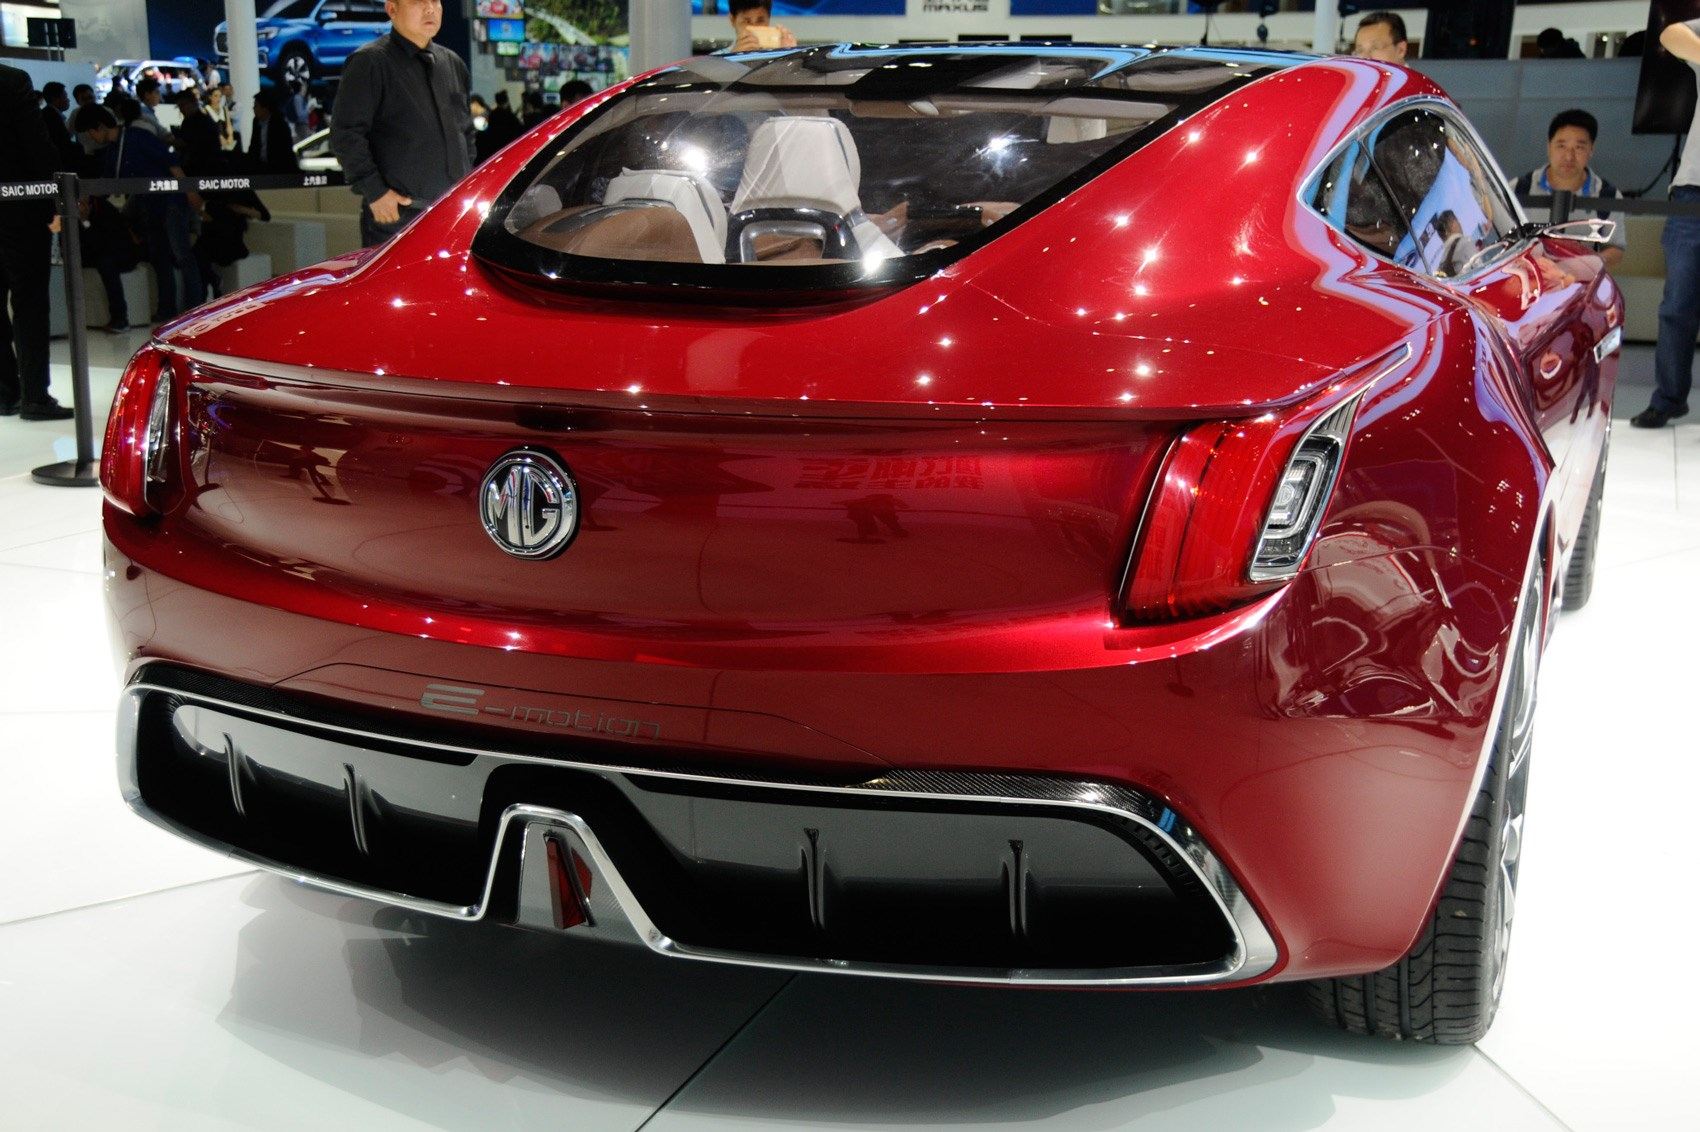 Supercar Driving Experience >> All-electric MG E-motion concept is supercar for millennials by CAR Magazine